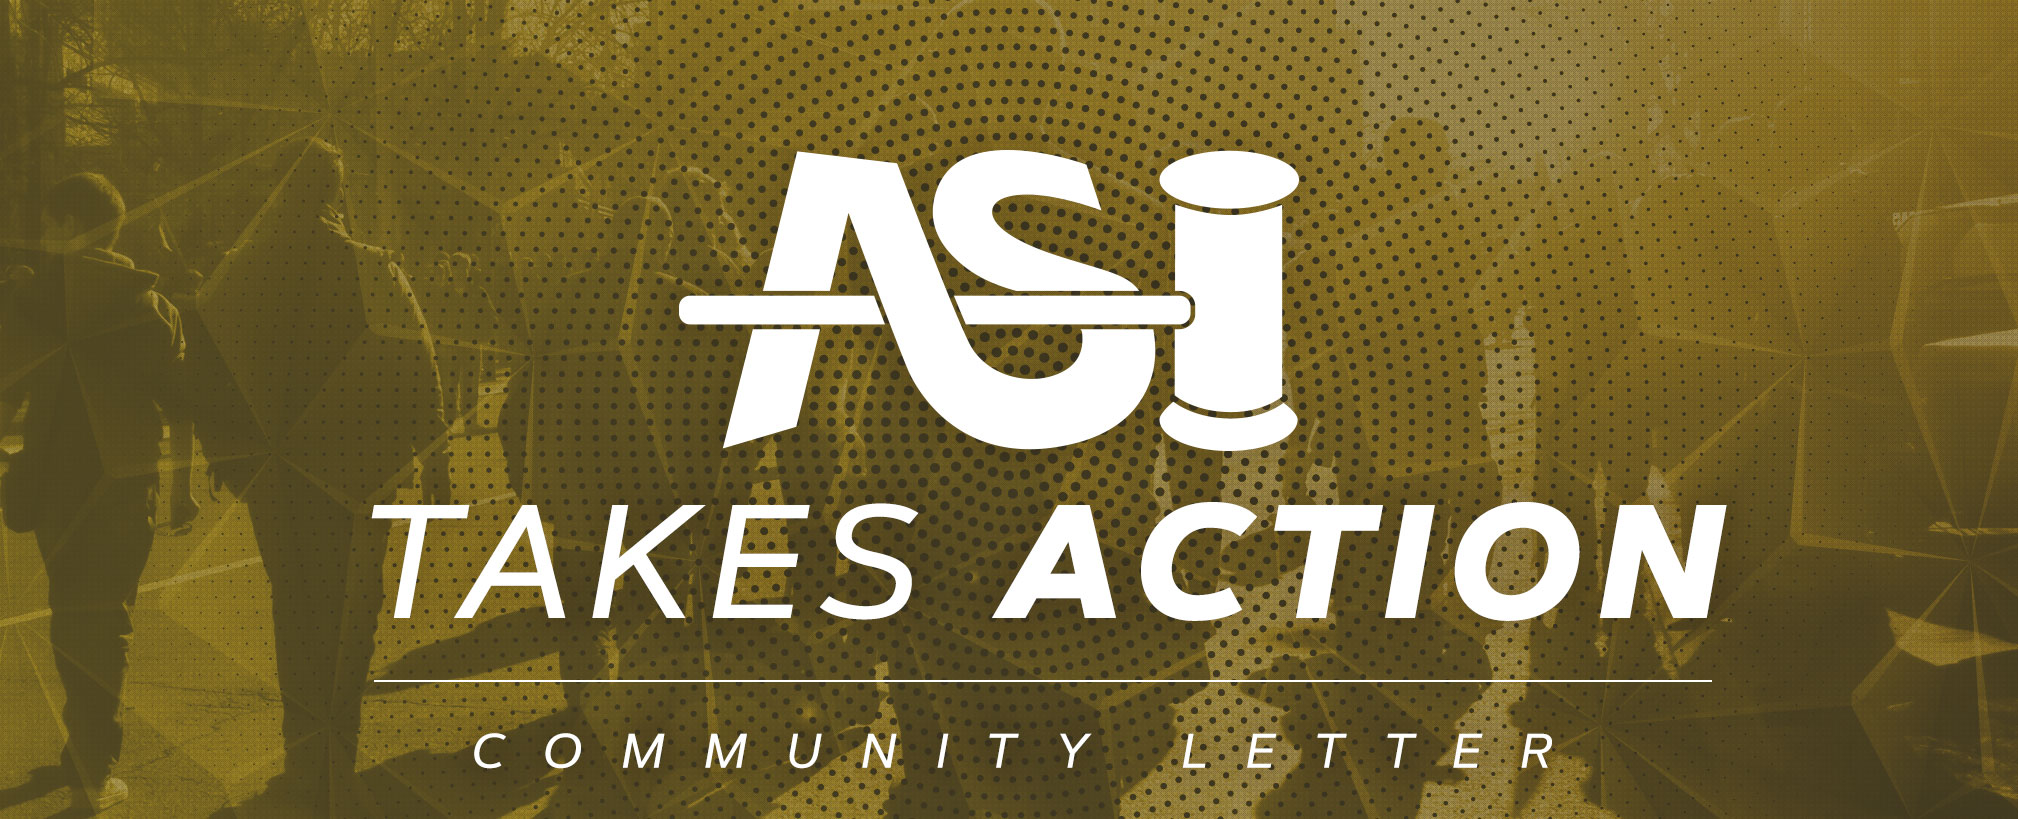 community Annoucement letter